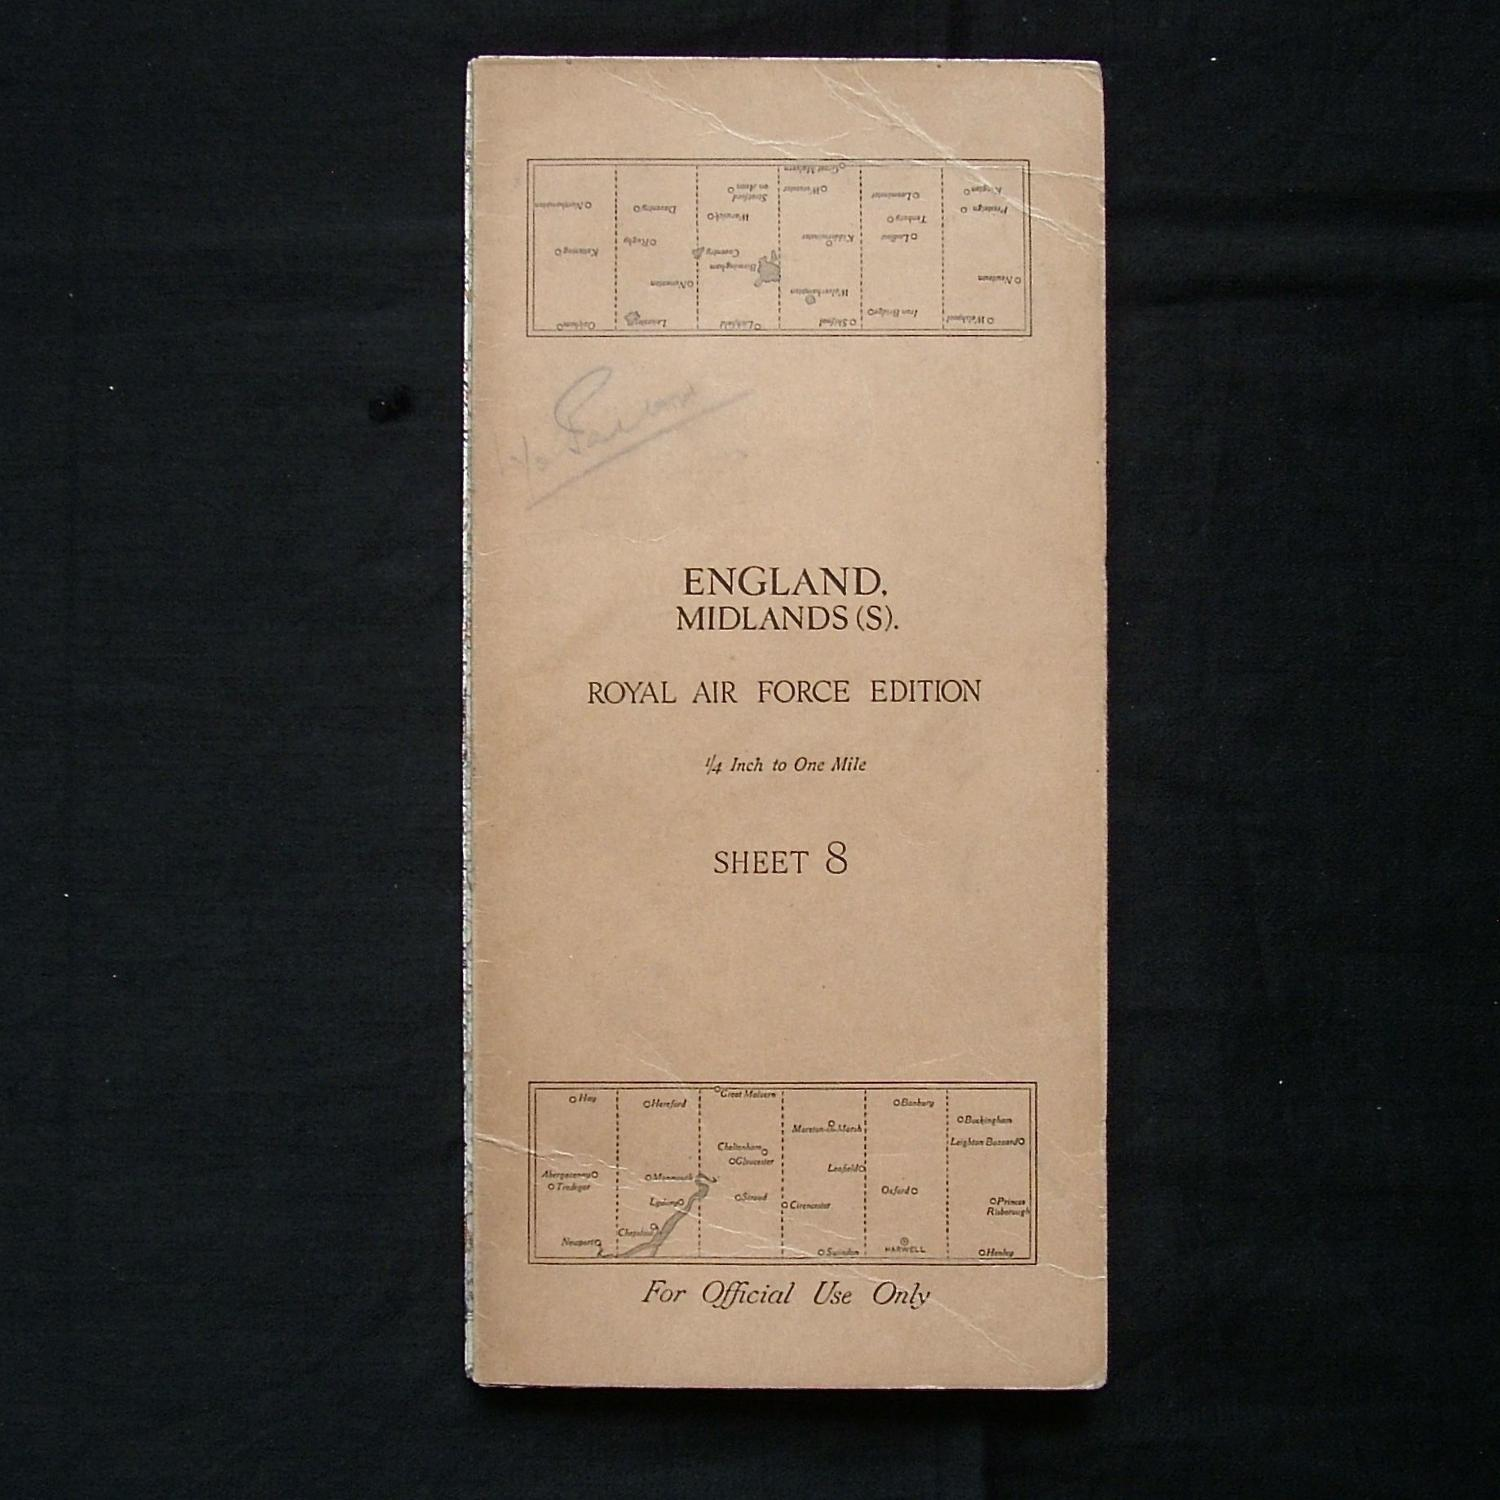 RAF flight map, Midlands (S)